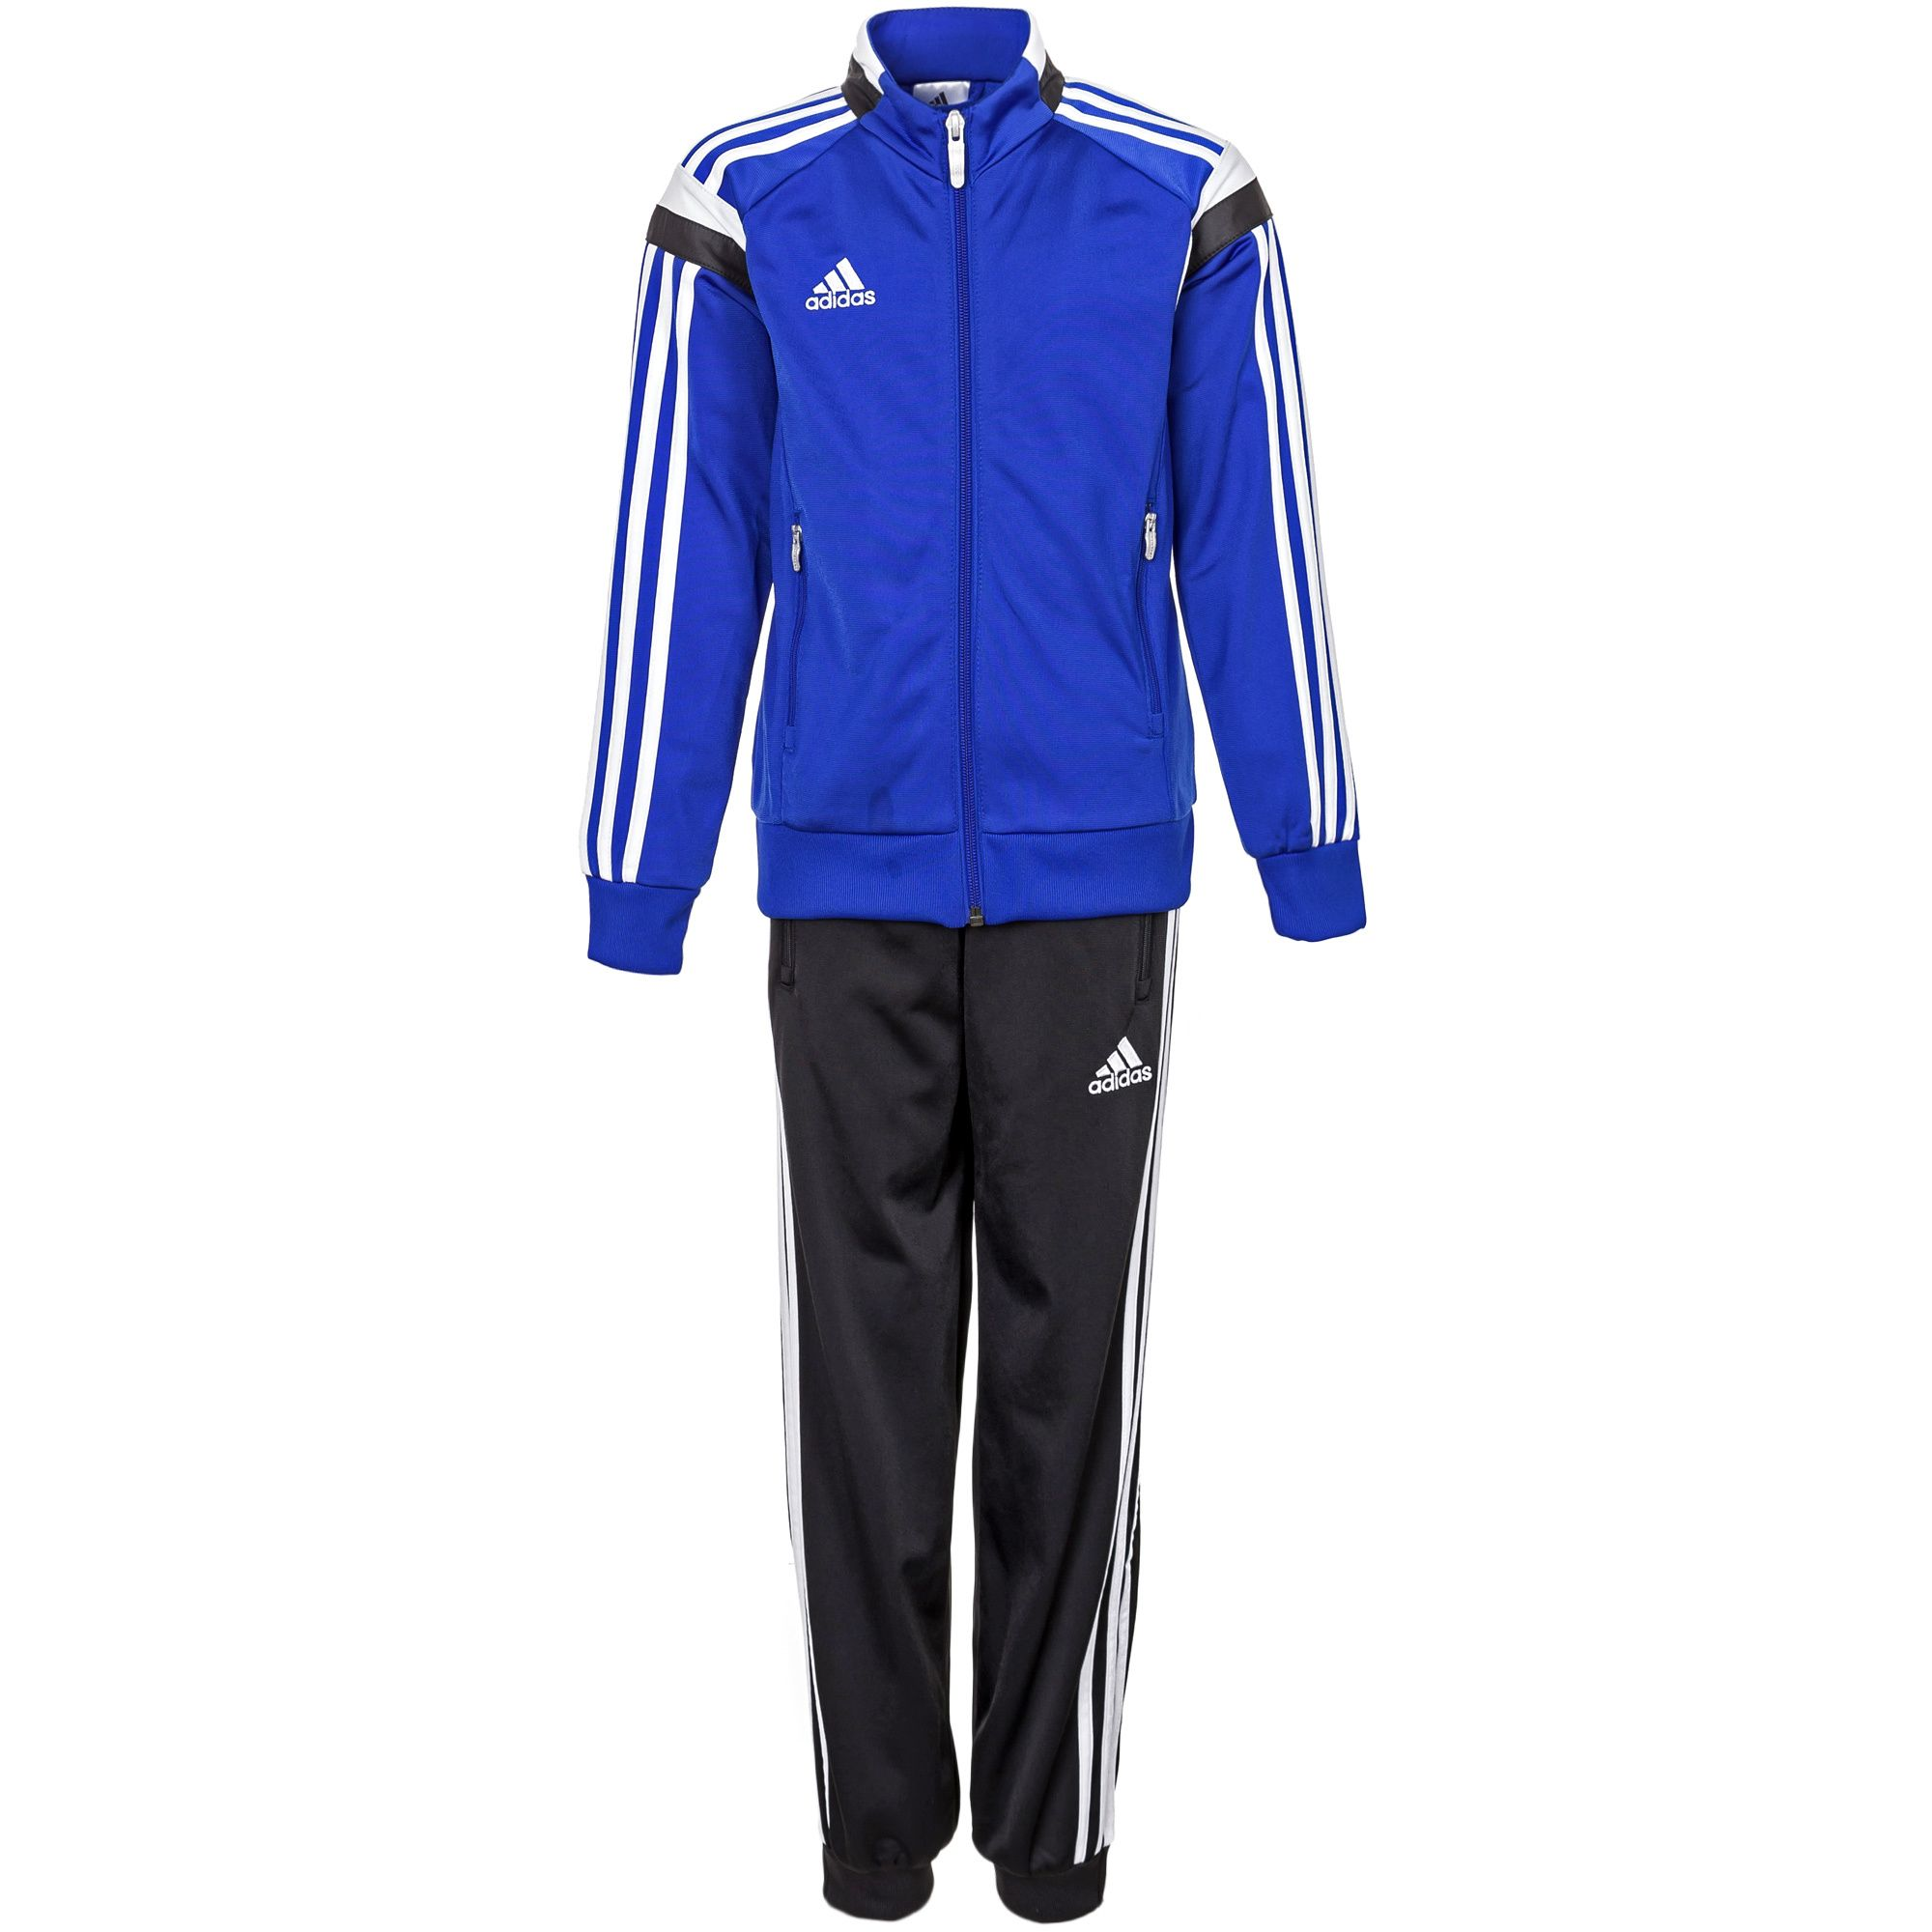 Adidas Bettwäsche Adidas Performance Set Condivo 14 Polyesteranzug Kinder